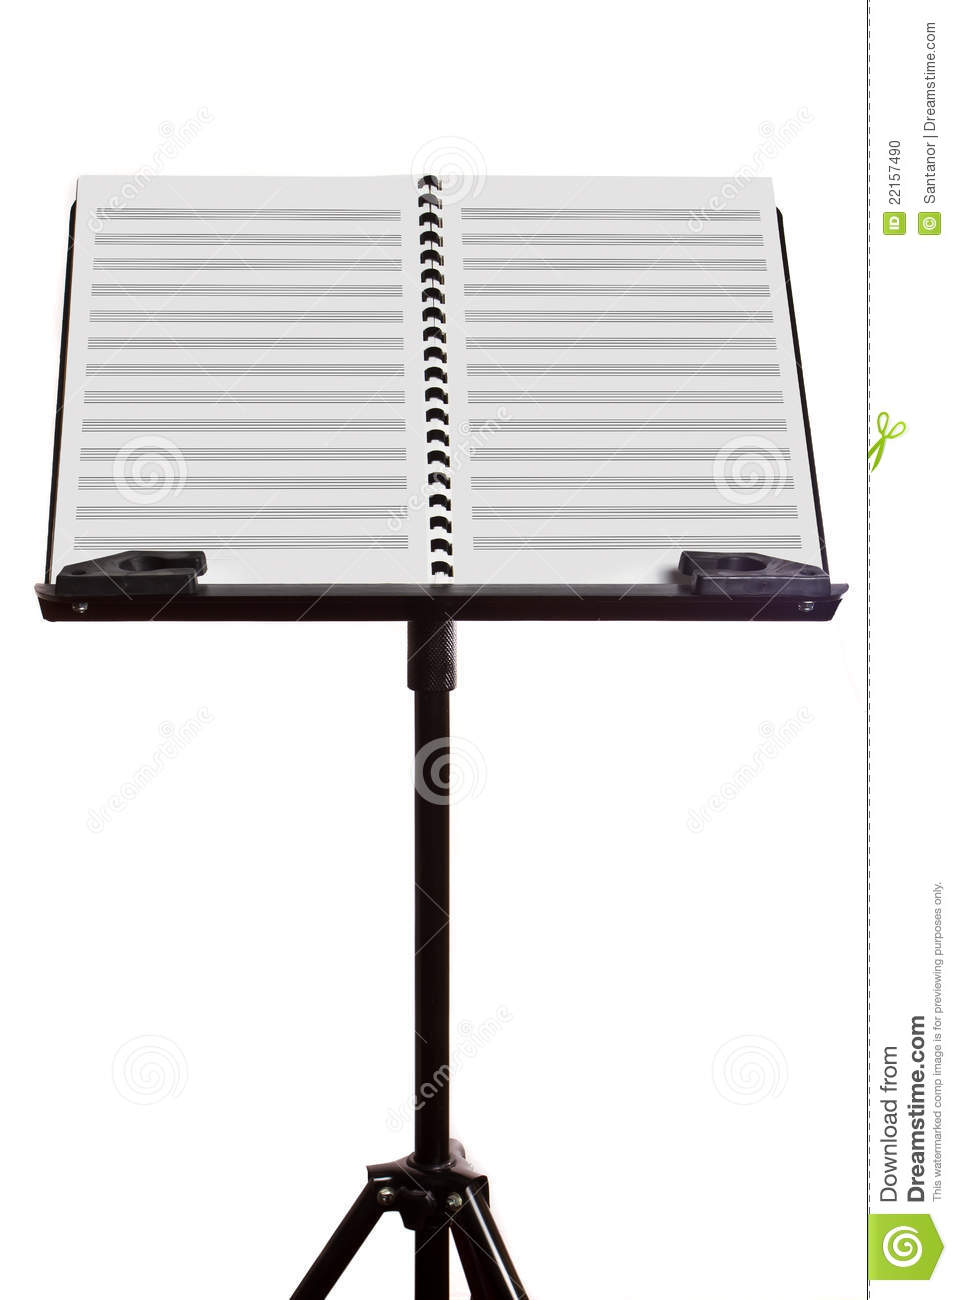 Blank Music Sheet On Stand Stock Photo   Image  22157490